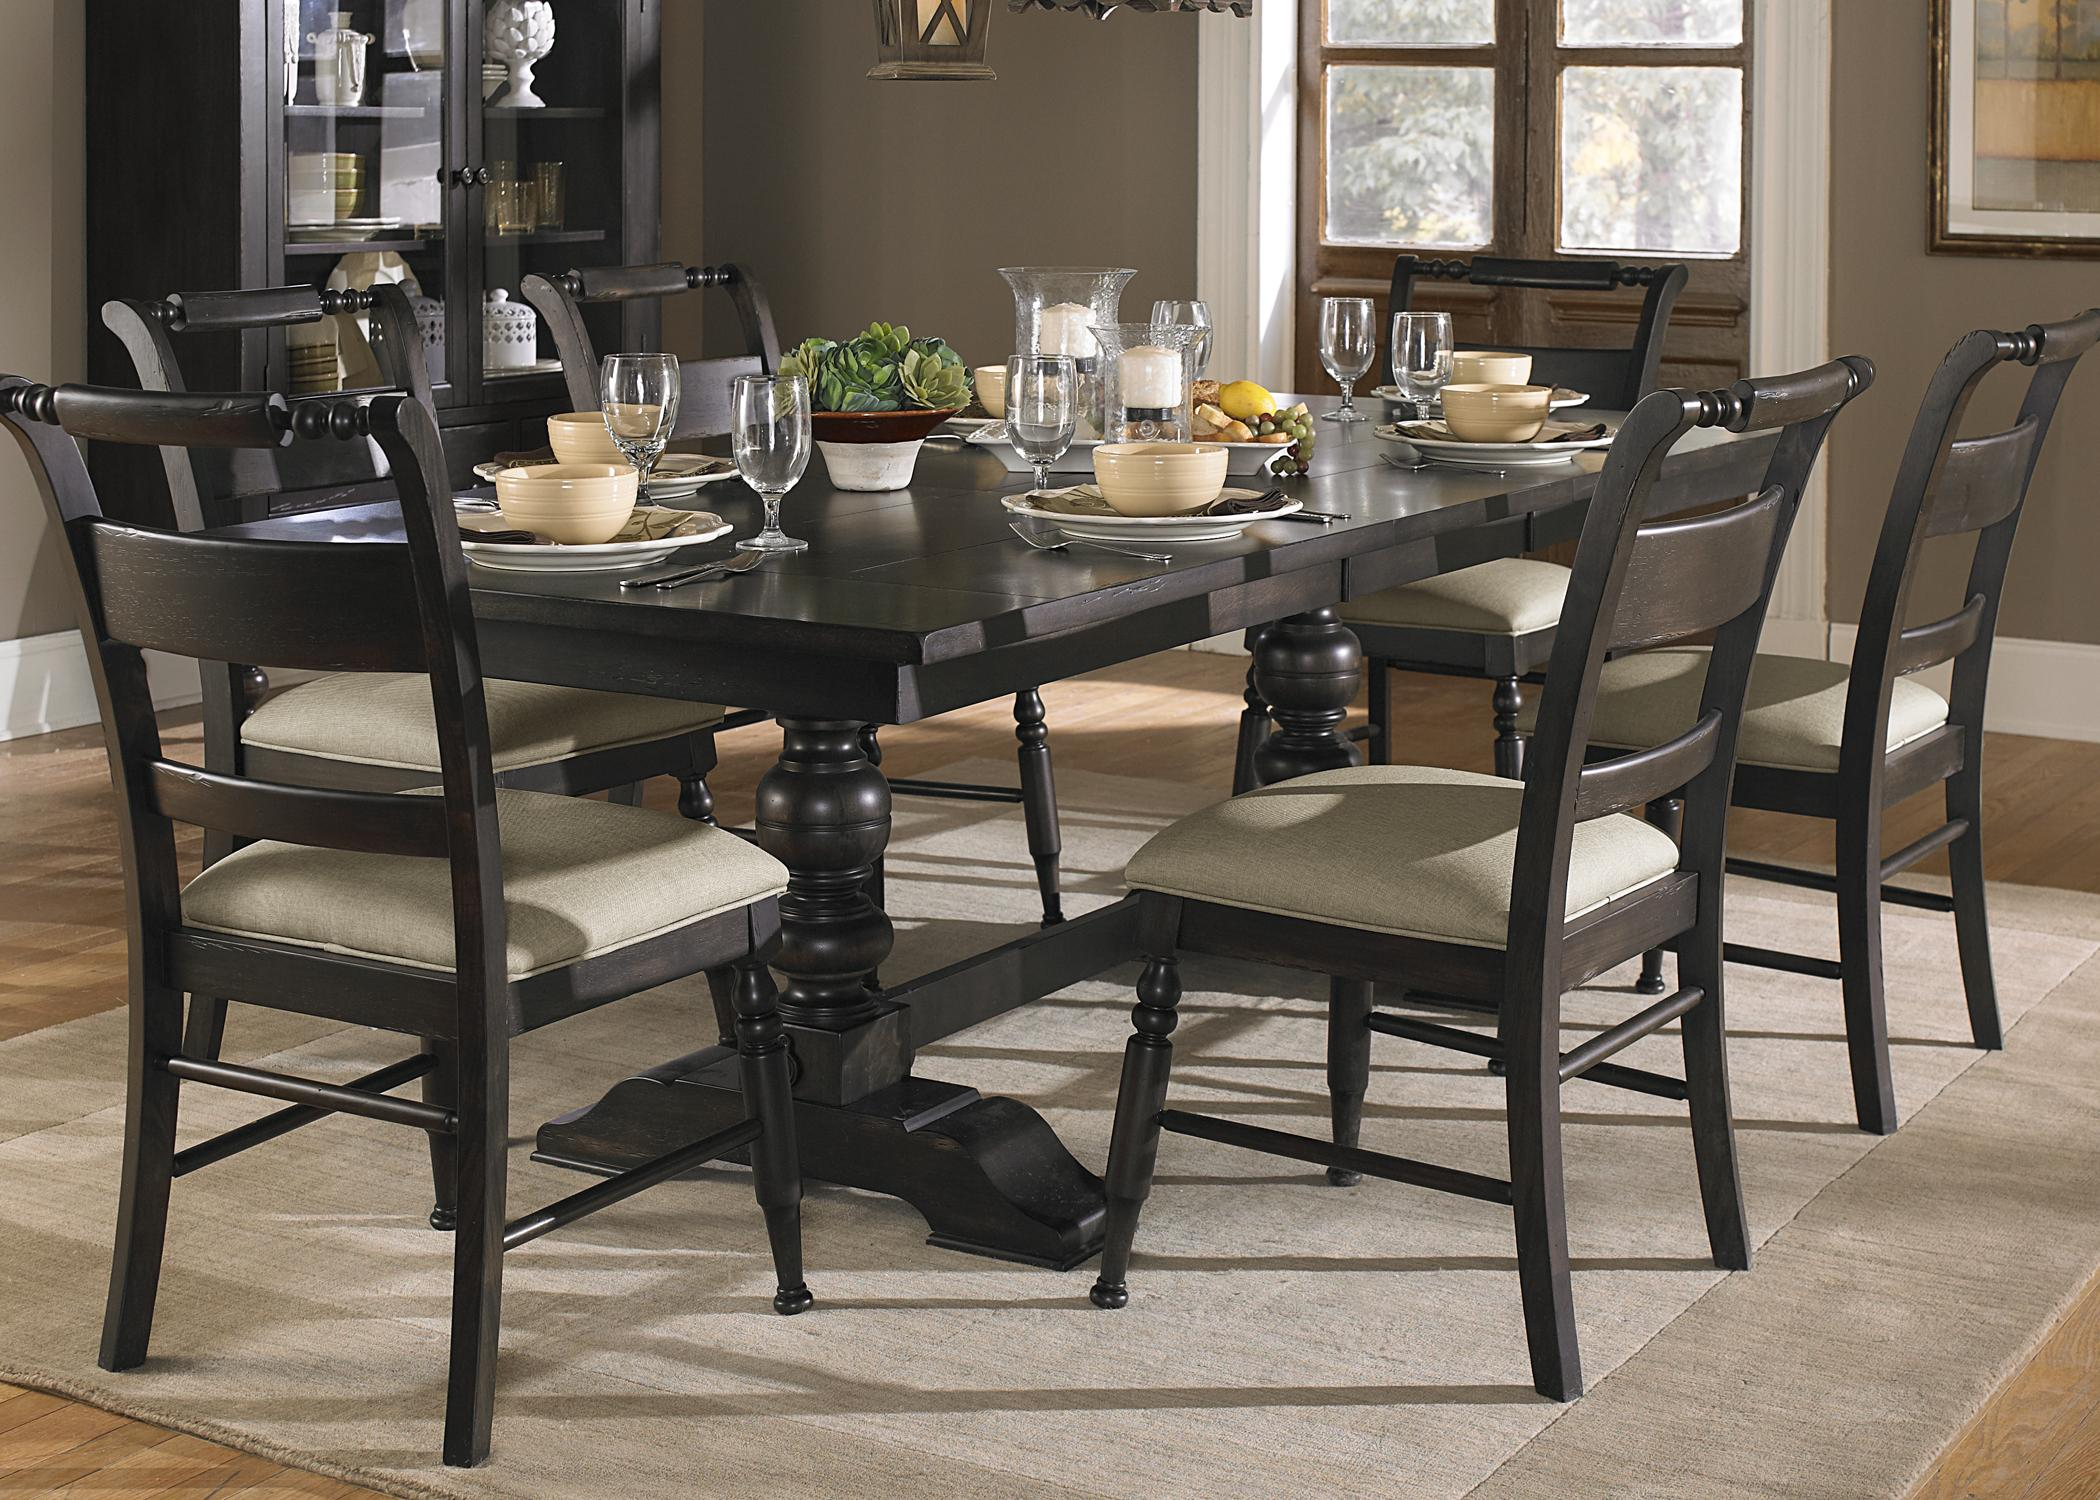 7 Piece Trestle Dining Room Table Set & 7 Piece Trestle Dining Room Table Set by Liberty Furniture | Wolf ...